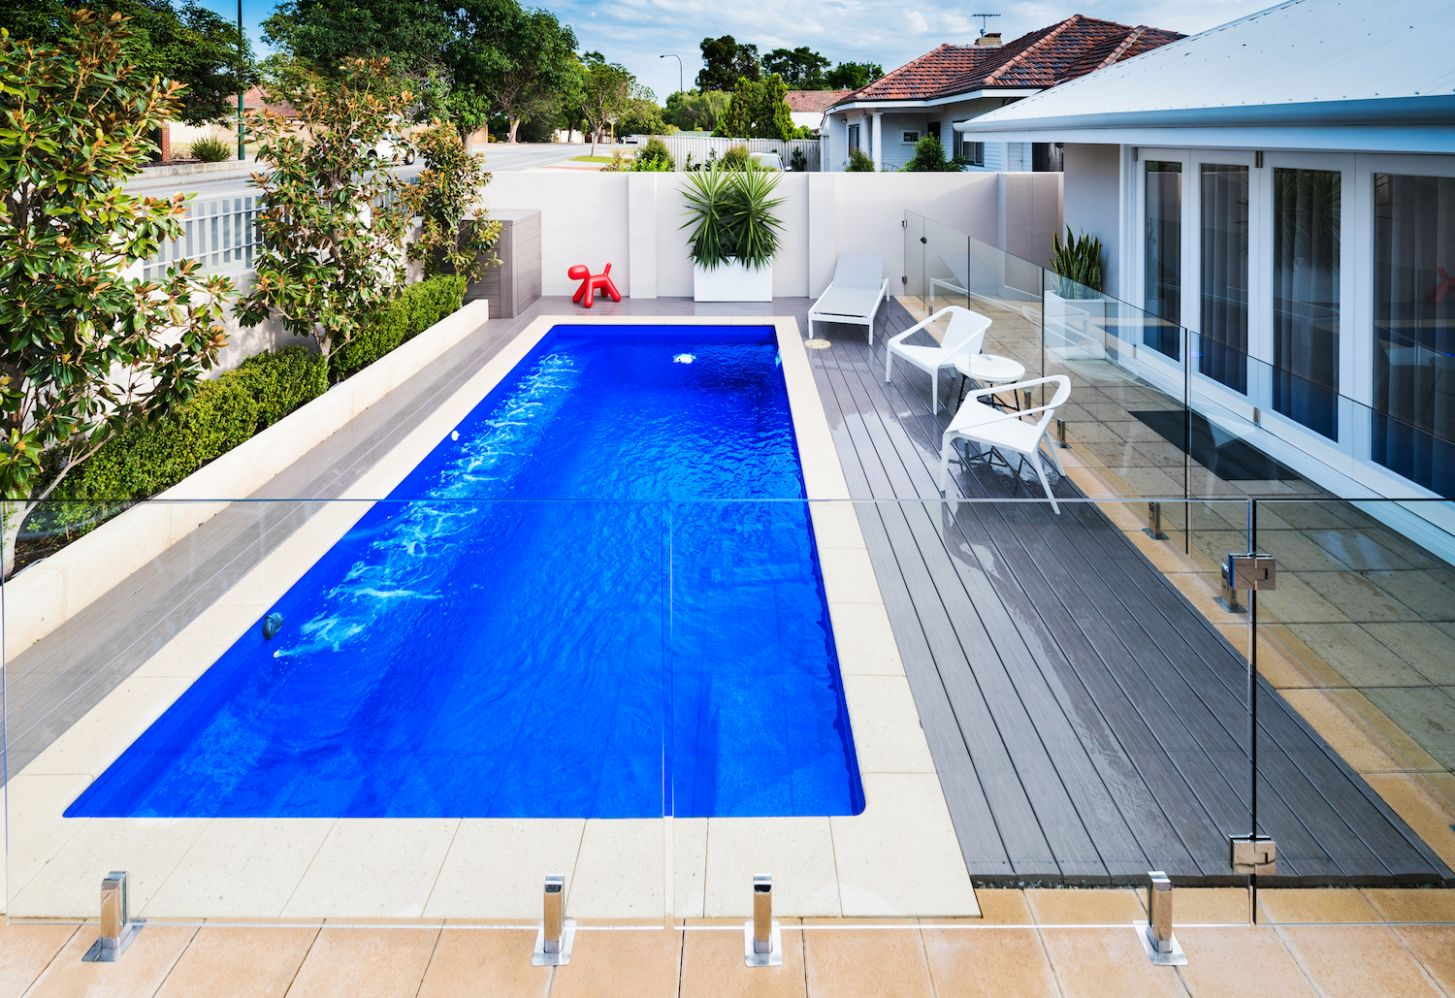 Pool Ideas - Fiberglass Pools - Freedom Pools And Spas - pool landscaping ideas queensland